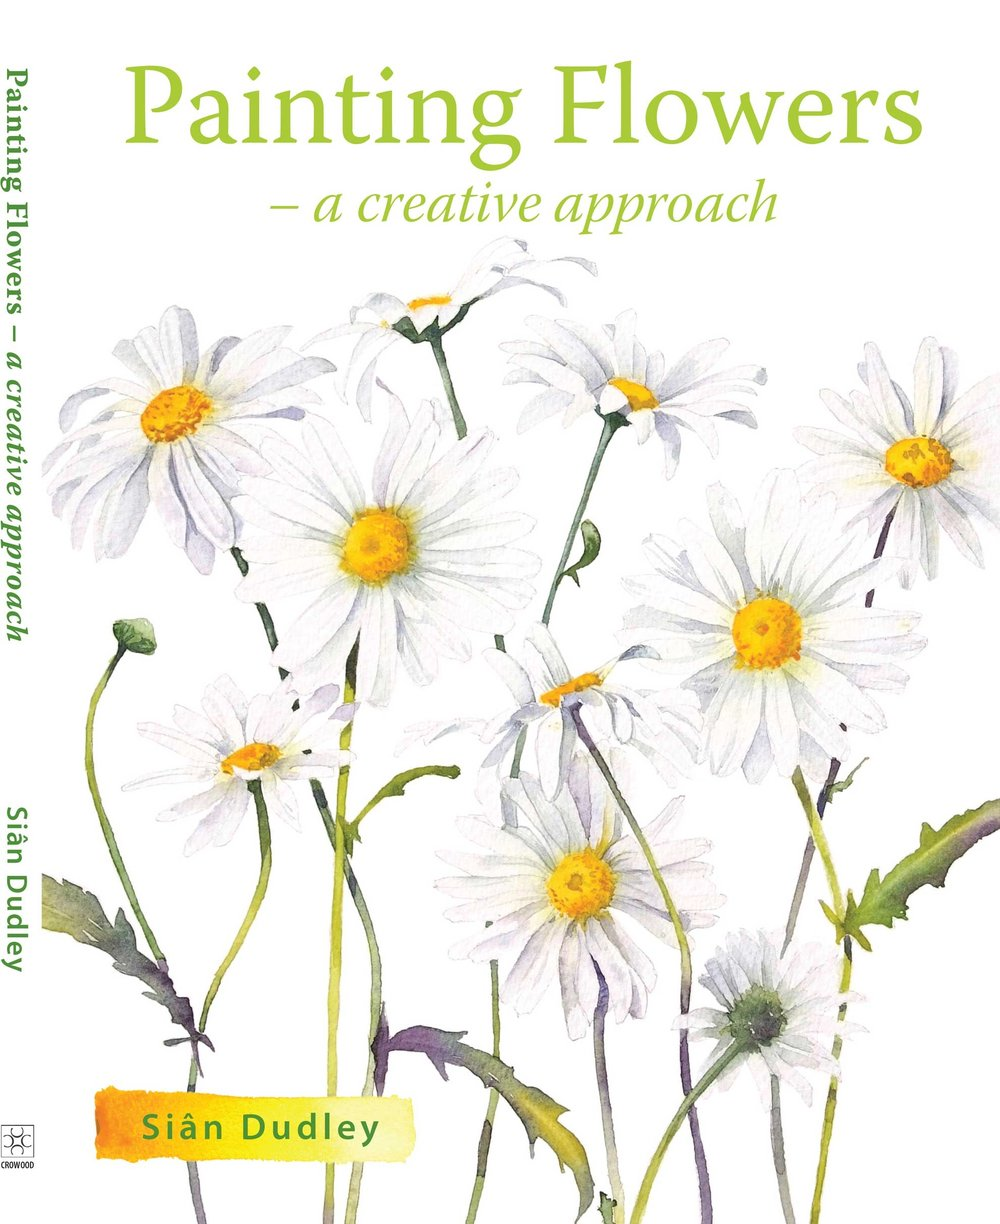 PaintingFlowersCoverFront.jpg